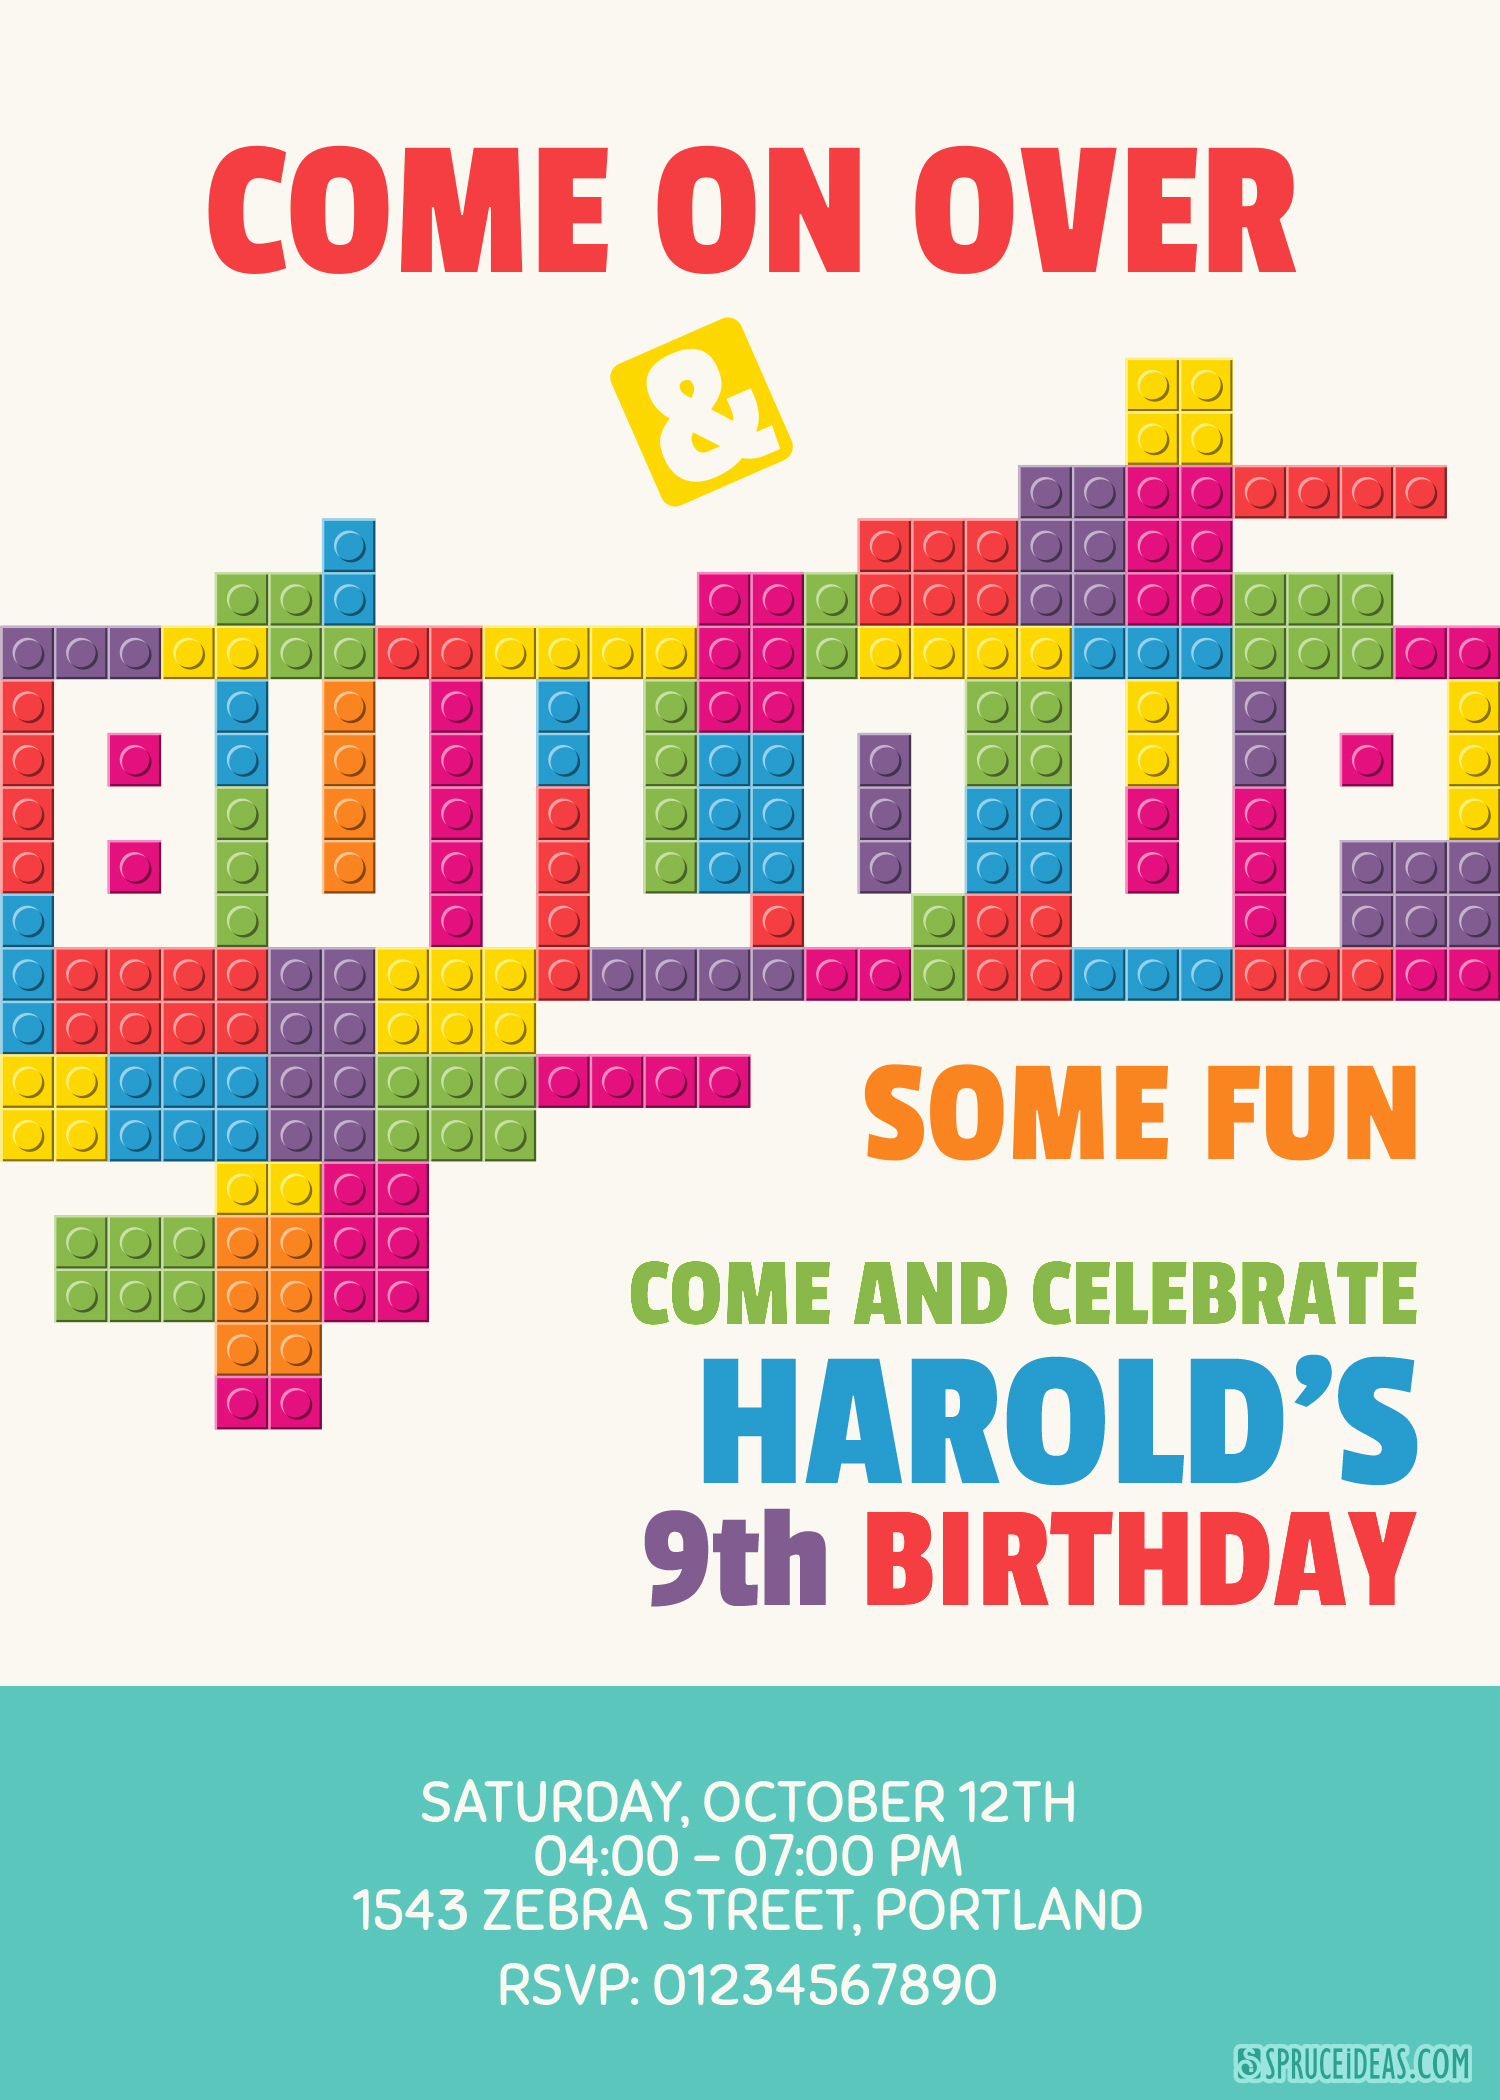 Lego Birthday Invitation Template Best Of Editable Lego Birthday Invitation Template Printable Free